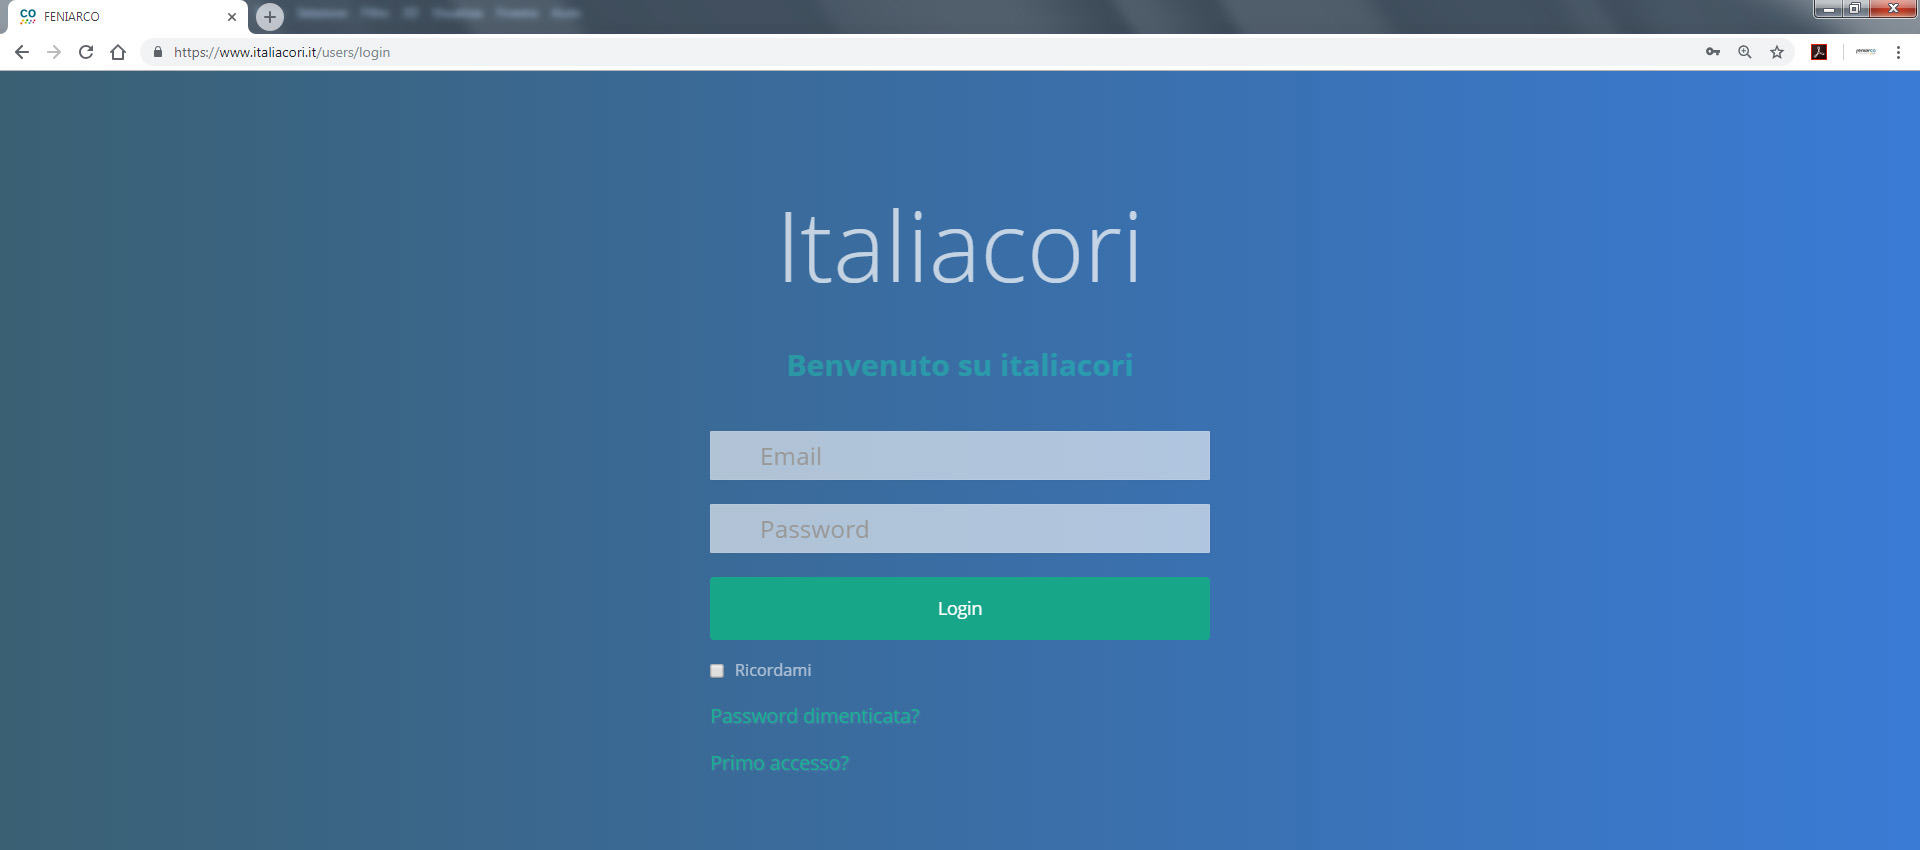 Italiacori_Screenshot01_Login.jpg